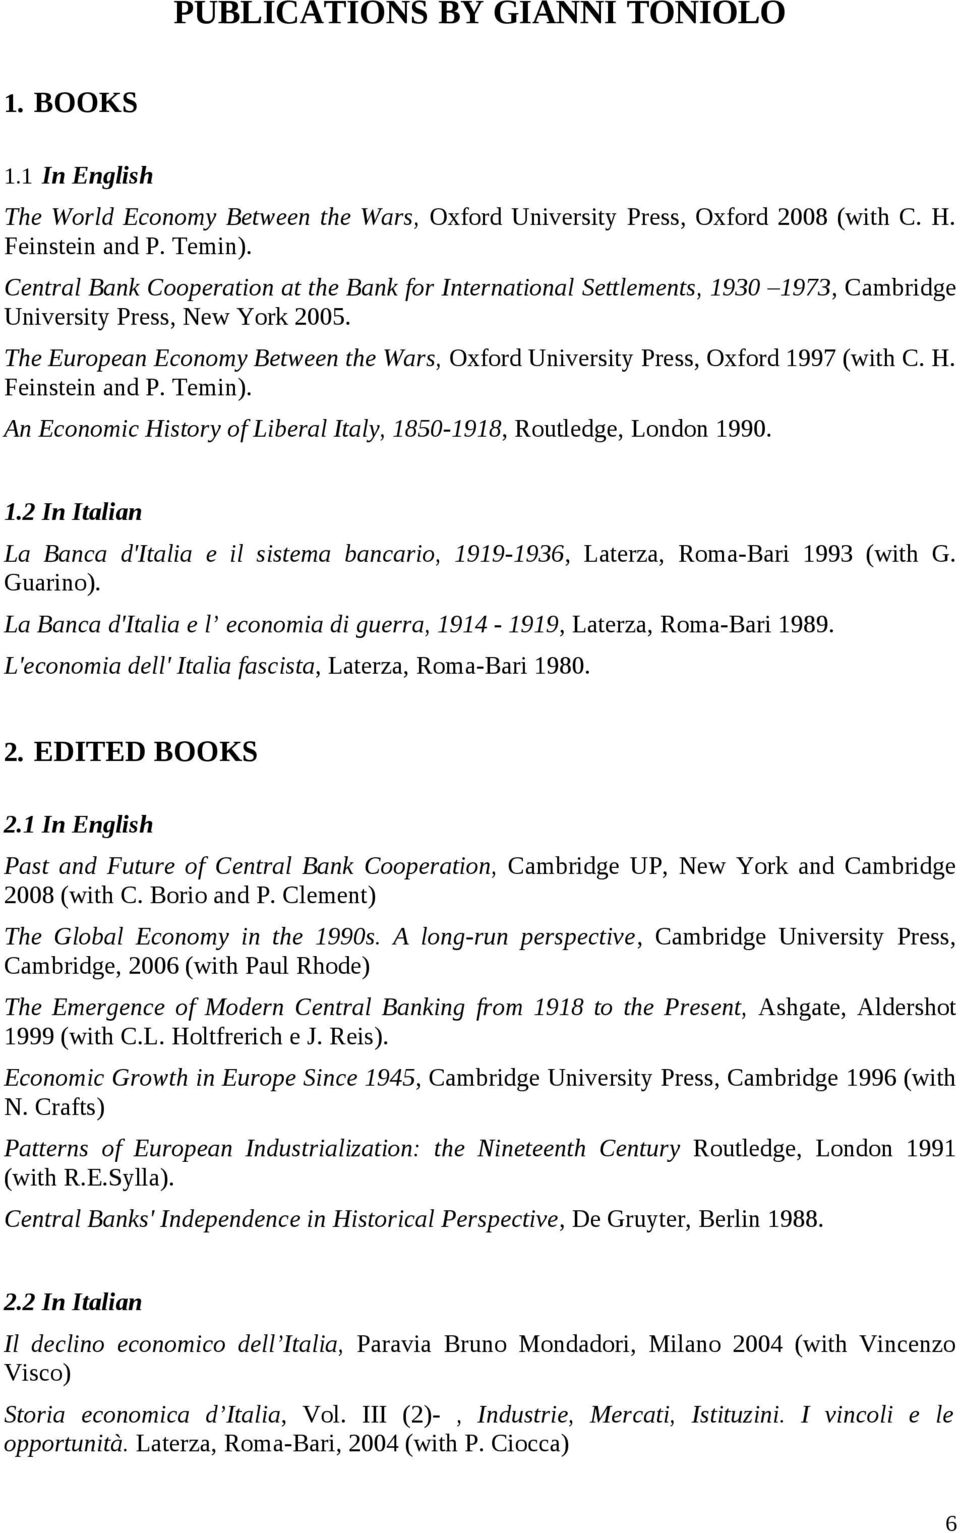 The European Economy Between the Wars, Oxford University Press, Oxford 1997 (with C. H. Feinstein and P. Temin). An Economic History of Liberal Italy, 1850-1918, Routledge, London 1990. 1.2 In Italian La Banca d'italia e il sistema bancario, 1919-1936, Laterza, Roma-Bari 1993 (with G.